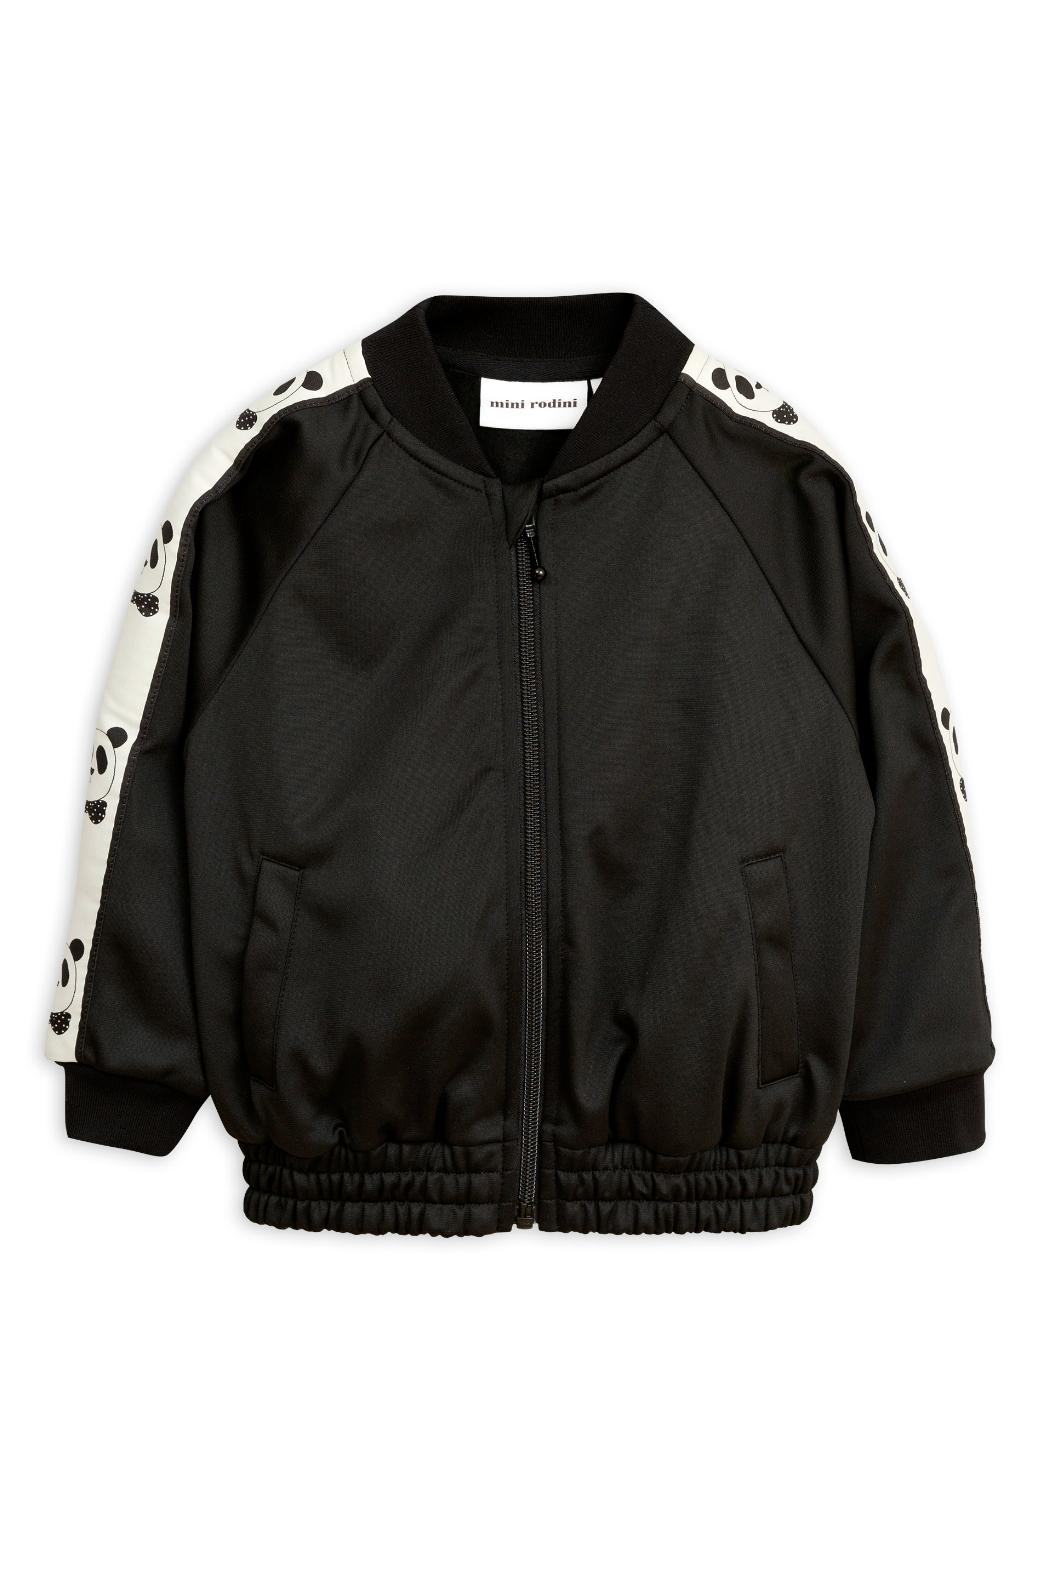 Mini Rodini Black Panda Jacket - Main Image